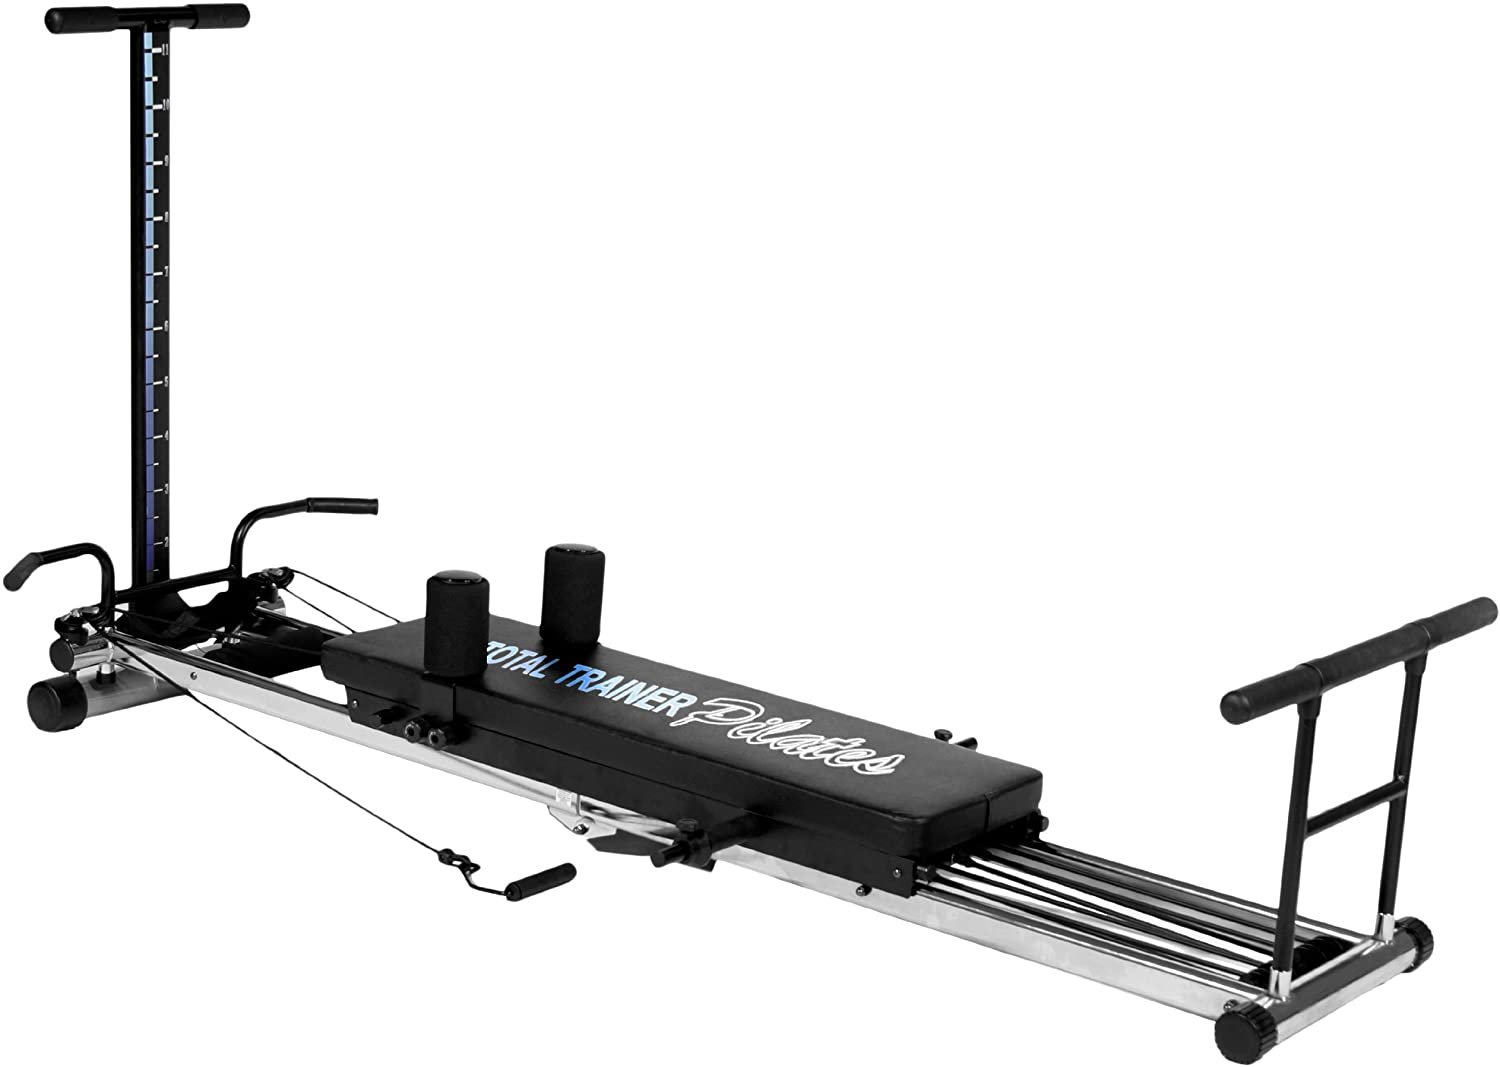 3. Bayou Pilates Pro Reformer | Home Pilates Machines